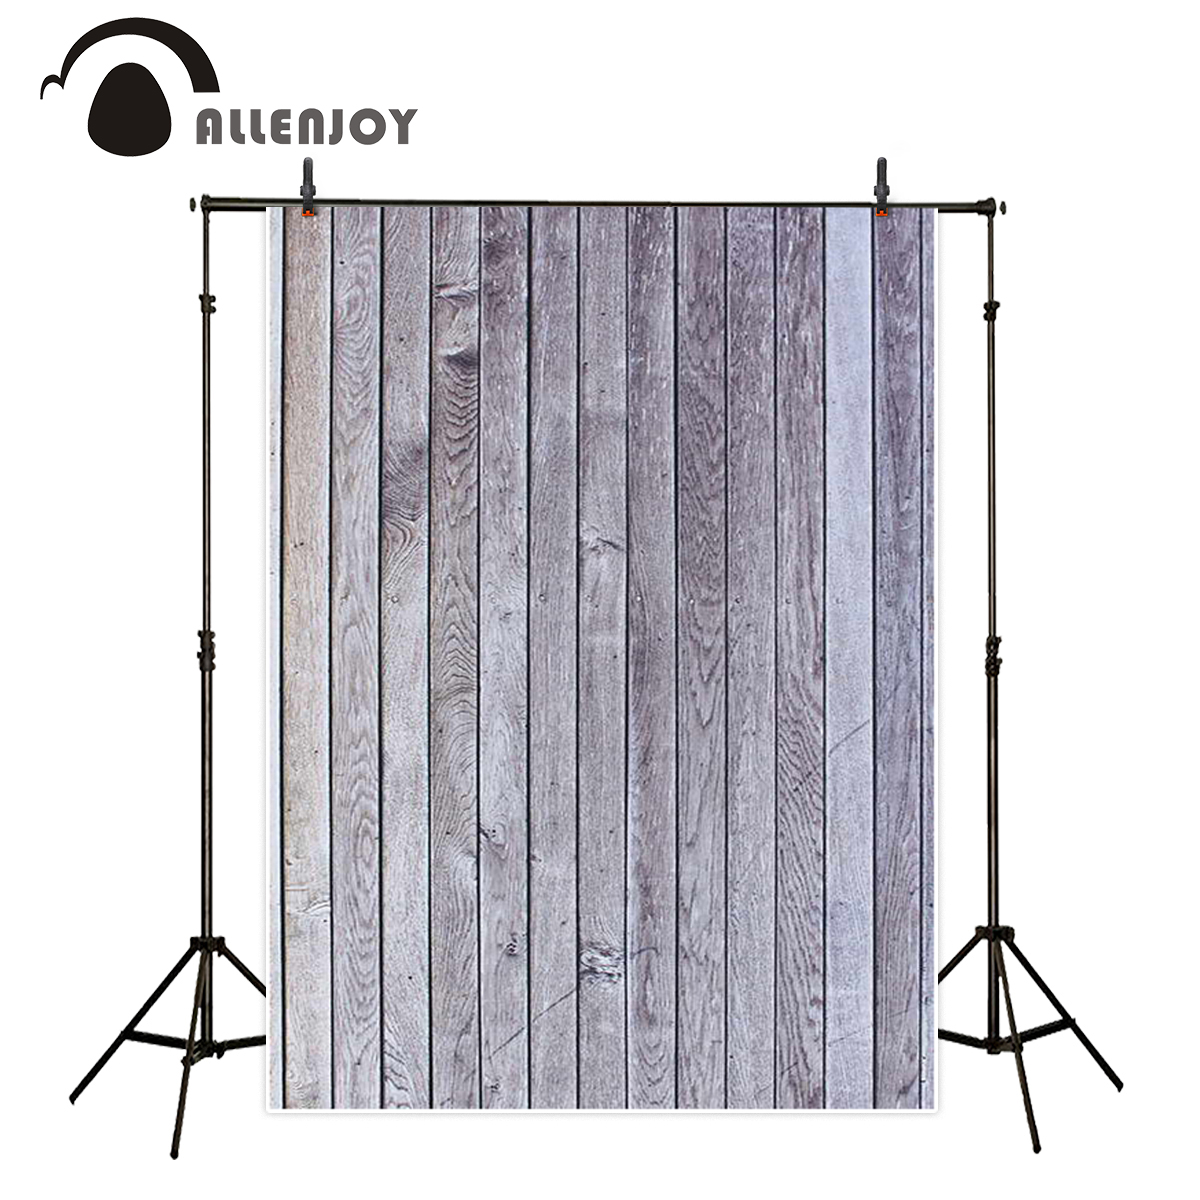 Allenjoy photography backdrop wood floor gray vintage kids backgrounds photo studio fantasy props professional allenjoy background for photo studio full moon spider black cat pumpkin halloween backdrop newborn original design fantasy props